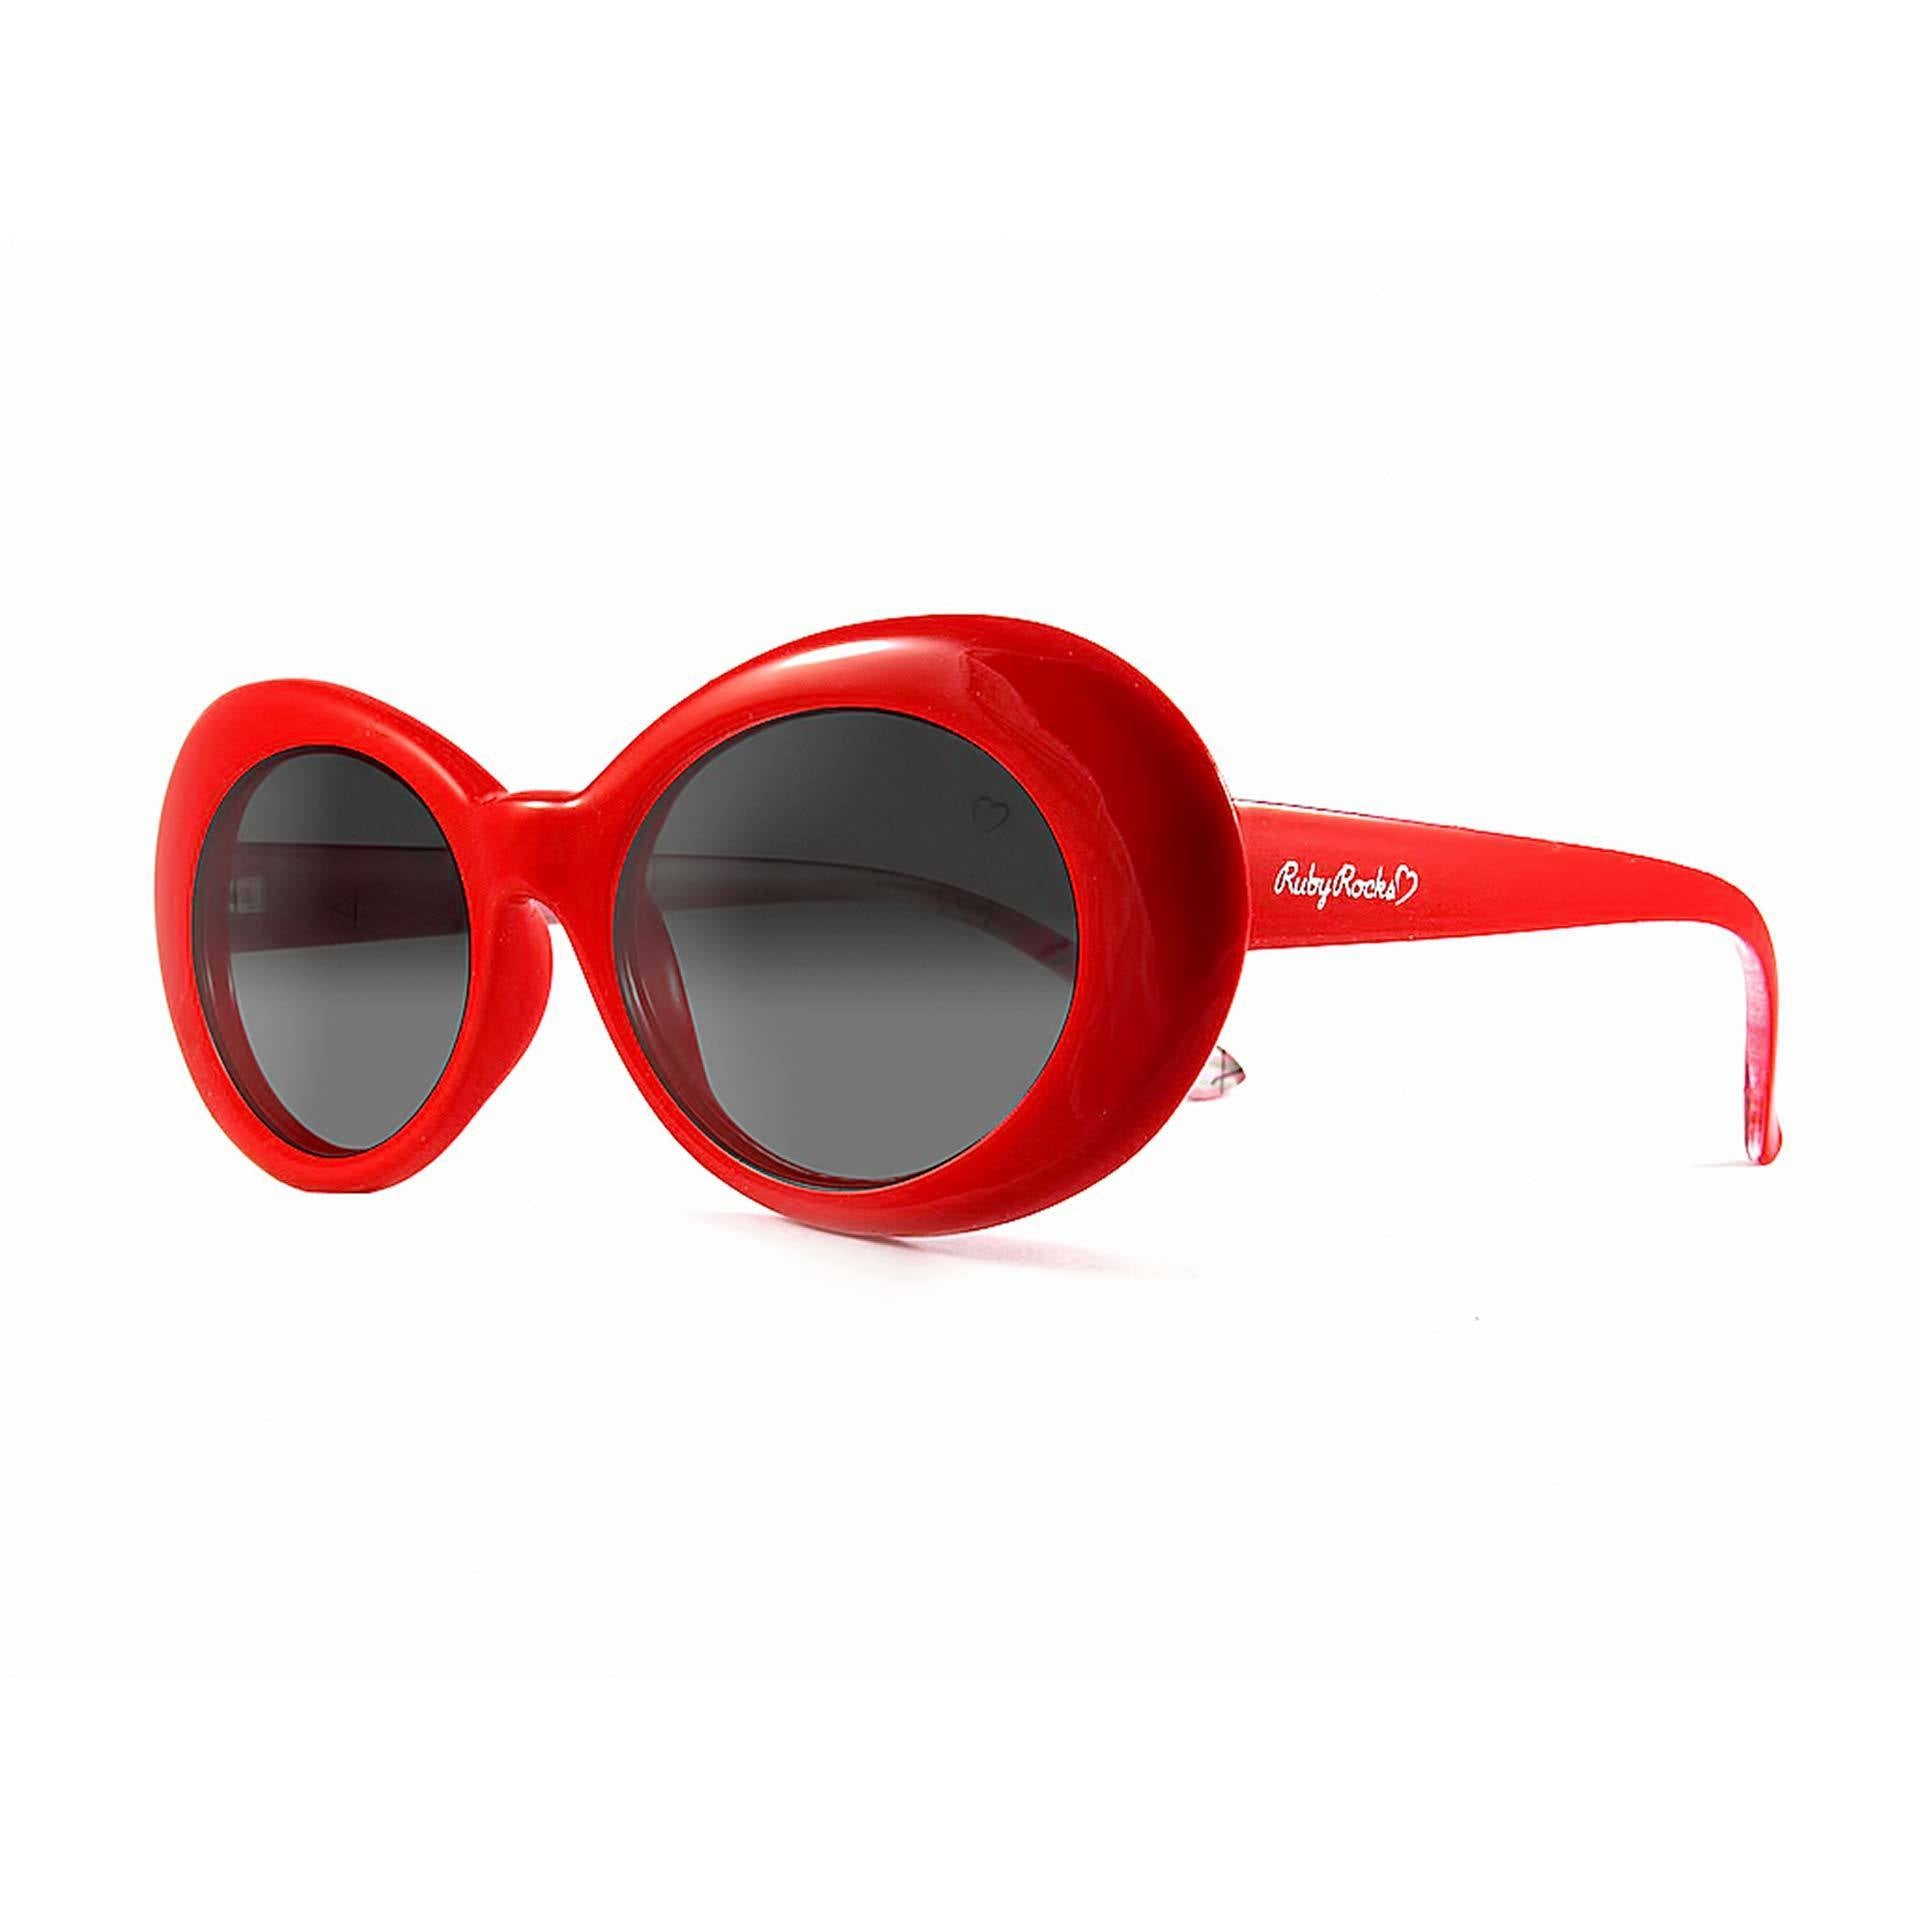 Ladies 'Antigua' Oval Sunglasses In Red